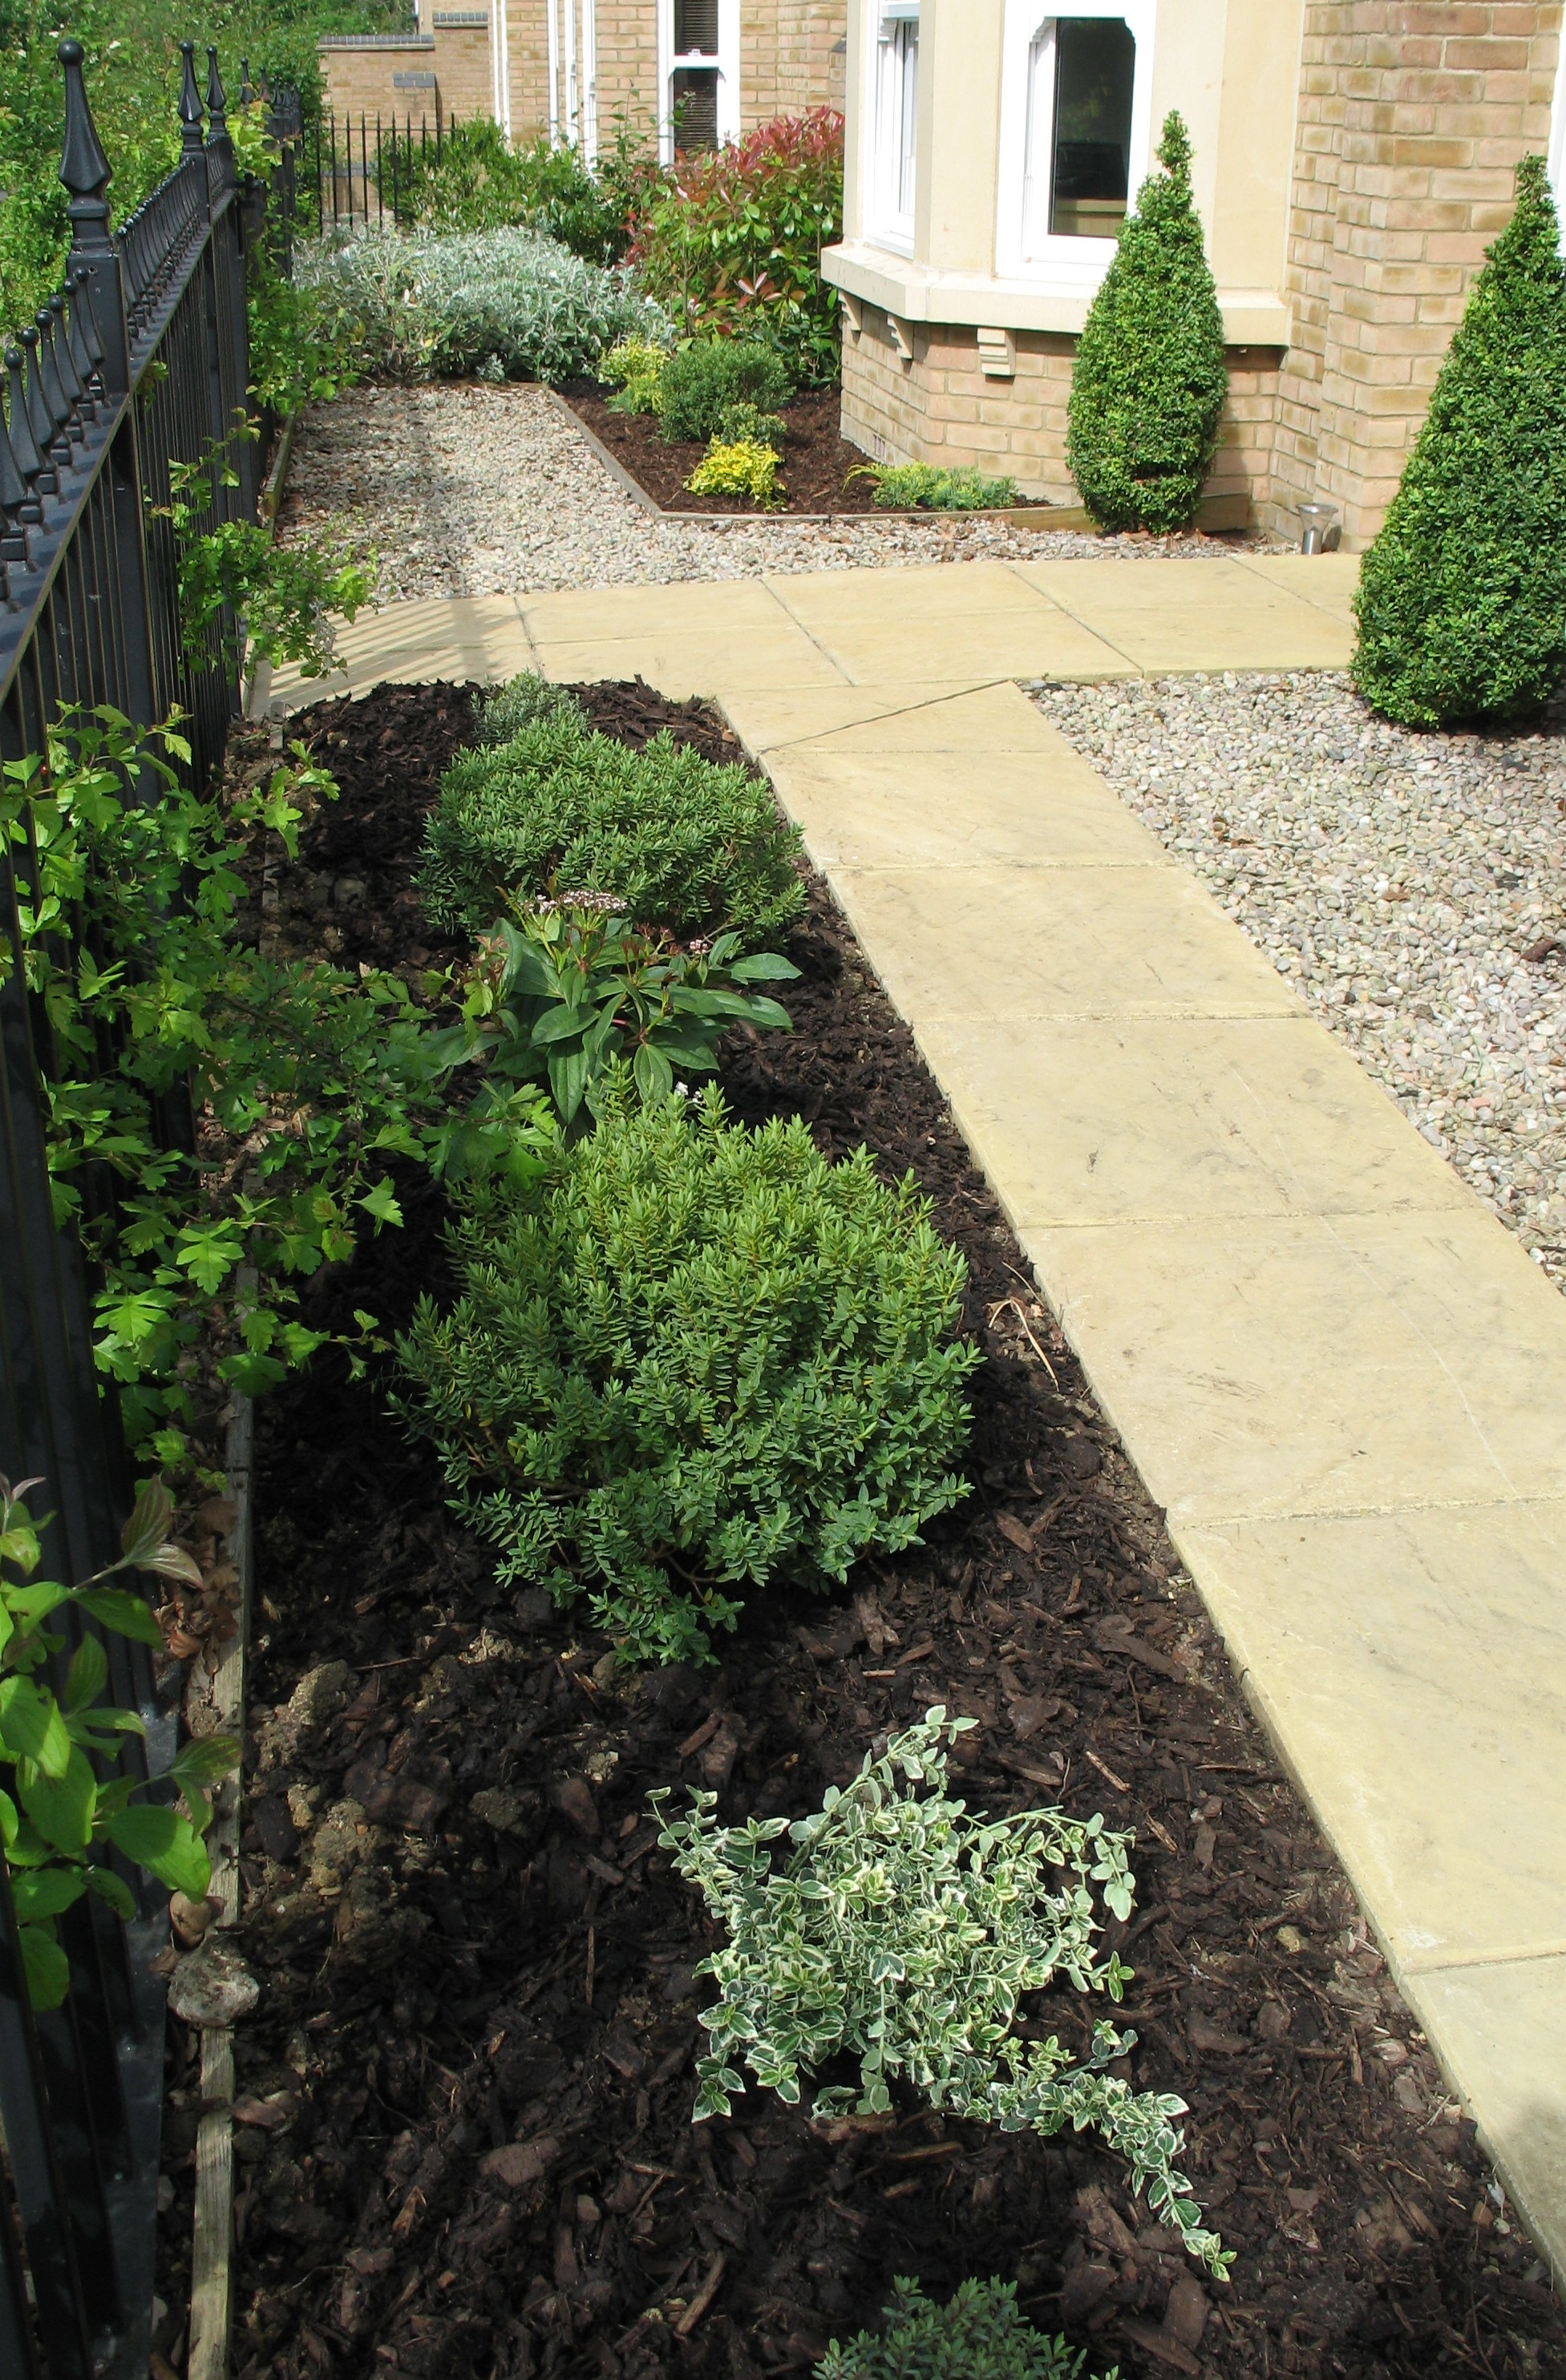 Easy plants for a front garden karen tizzard garden design for Front garden designs uk